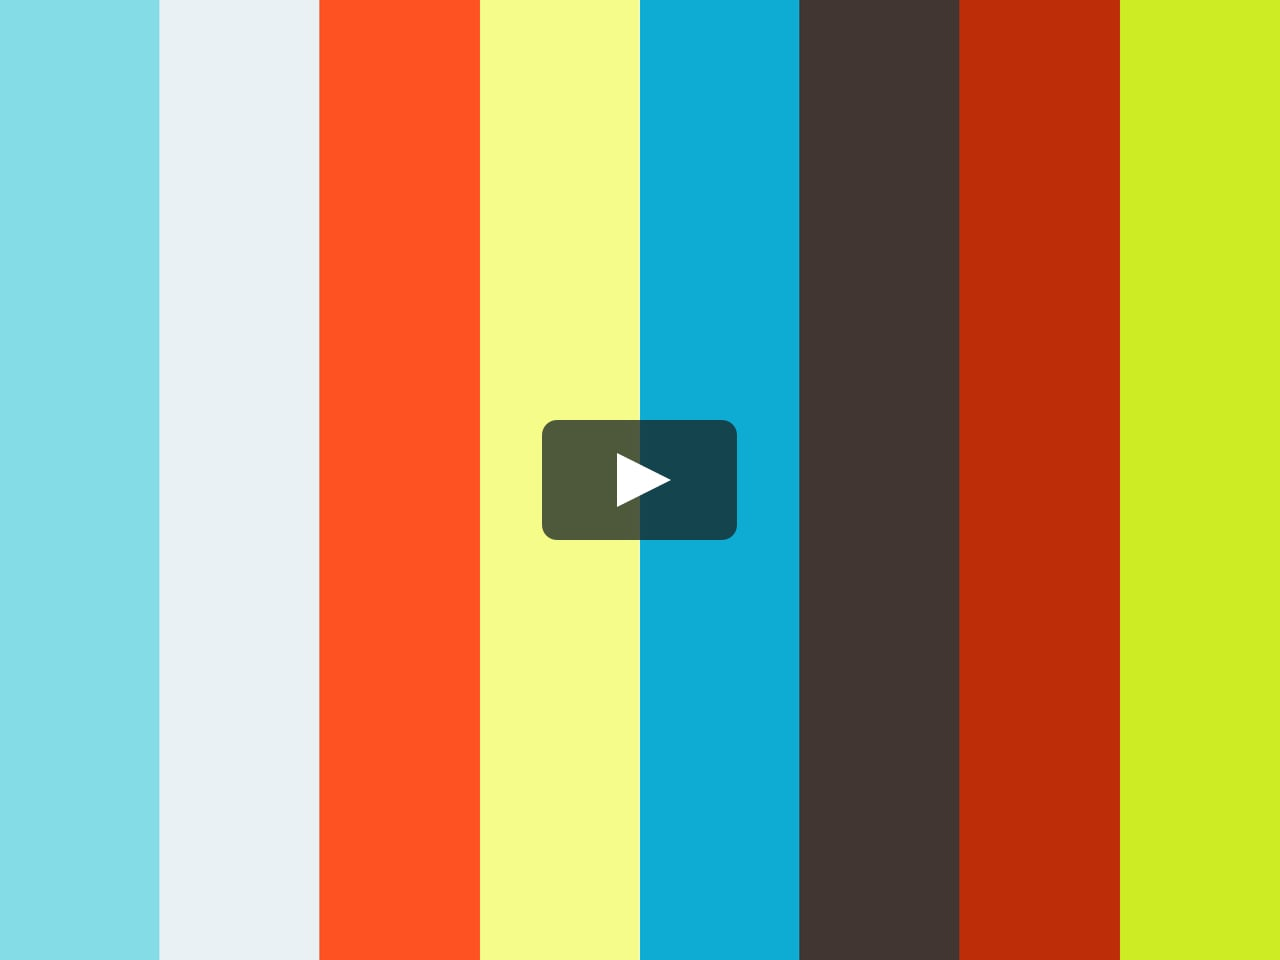 CB IRA LLC 4 on Vimeo